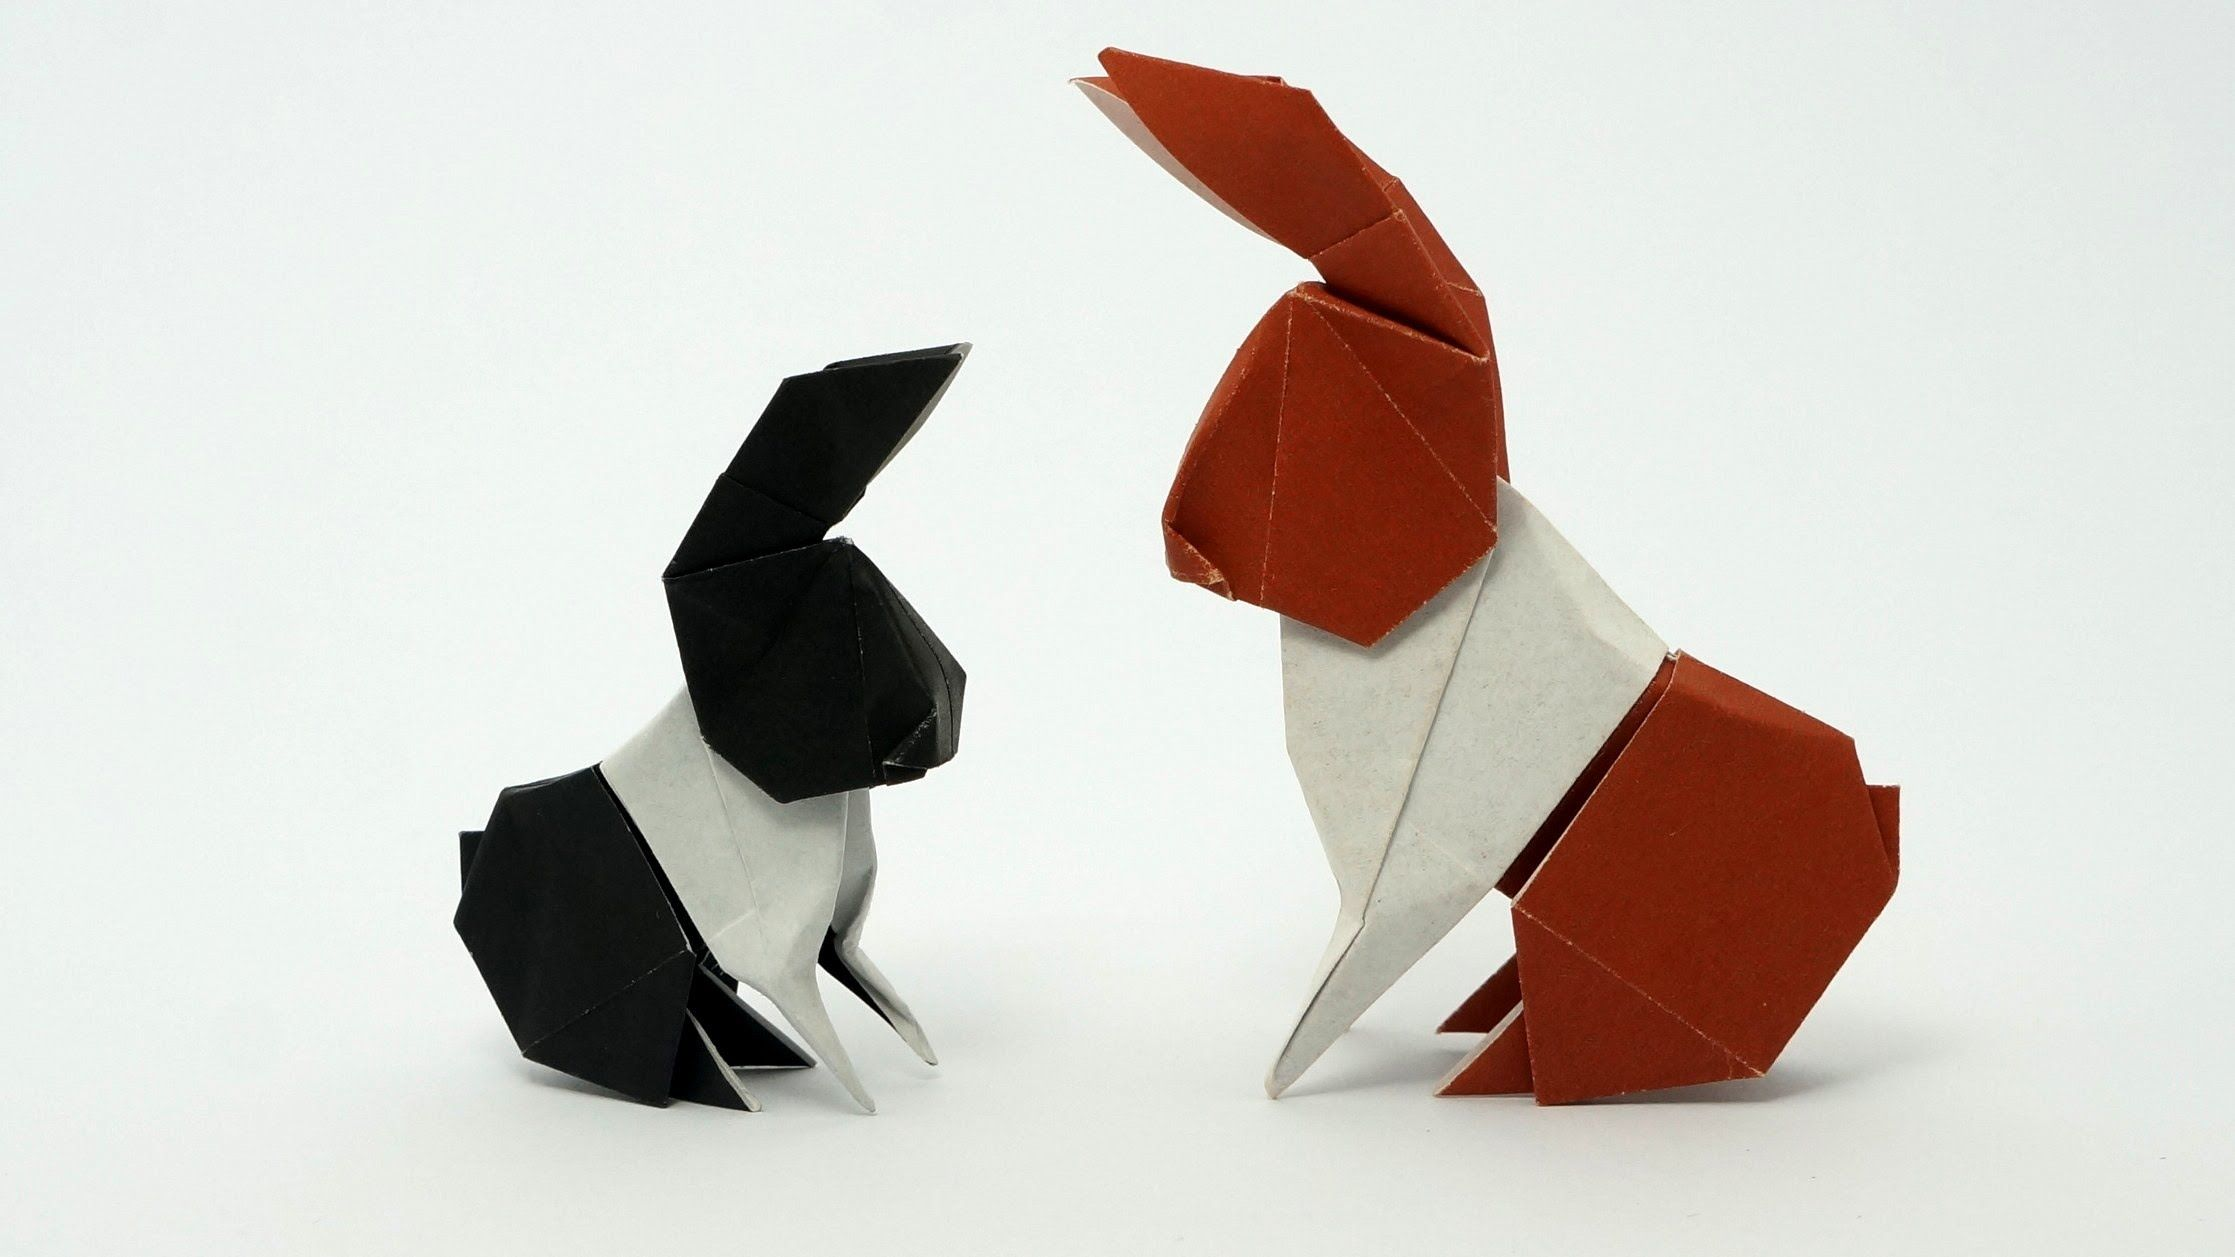 How to make an origami dollar bill hare designed by barth dunkan how to make an origami dollar bill hare designed by barth dunkan also looks like jeuxipadfo Images